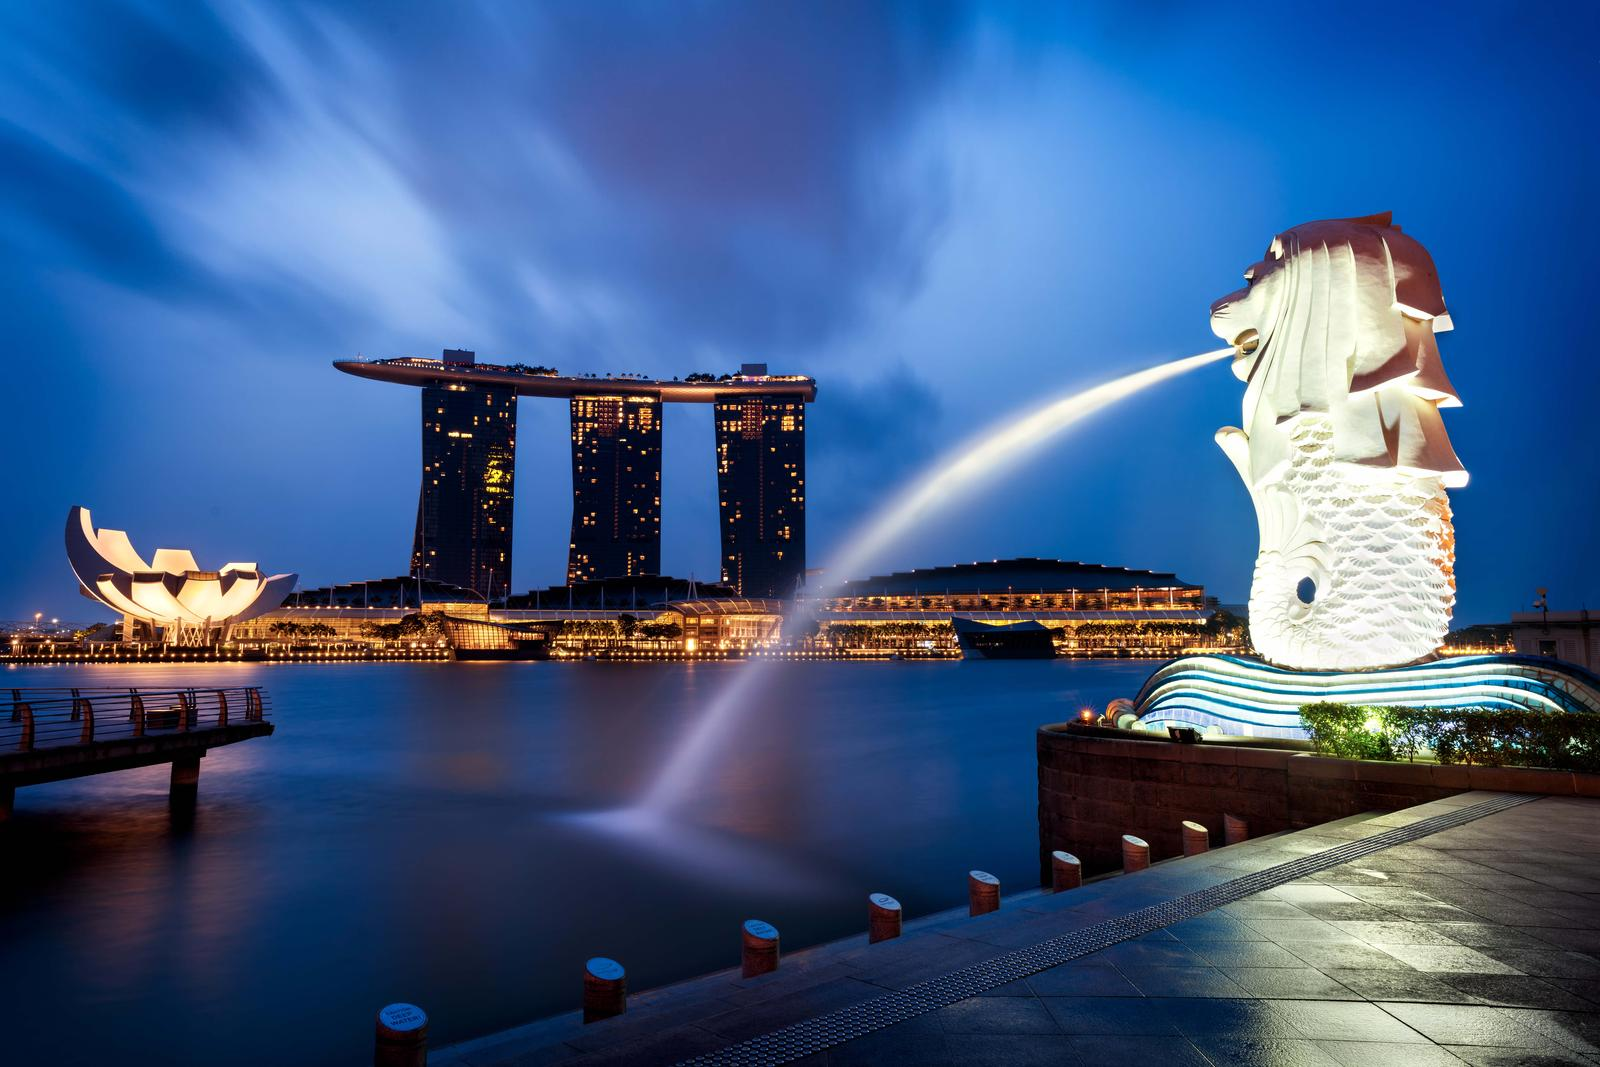 New York to Singapore flights